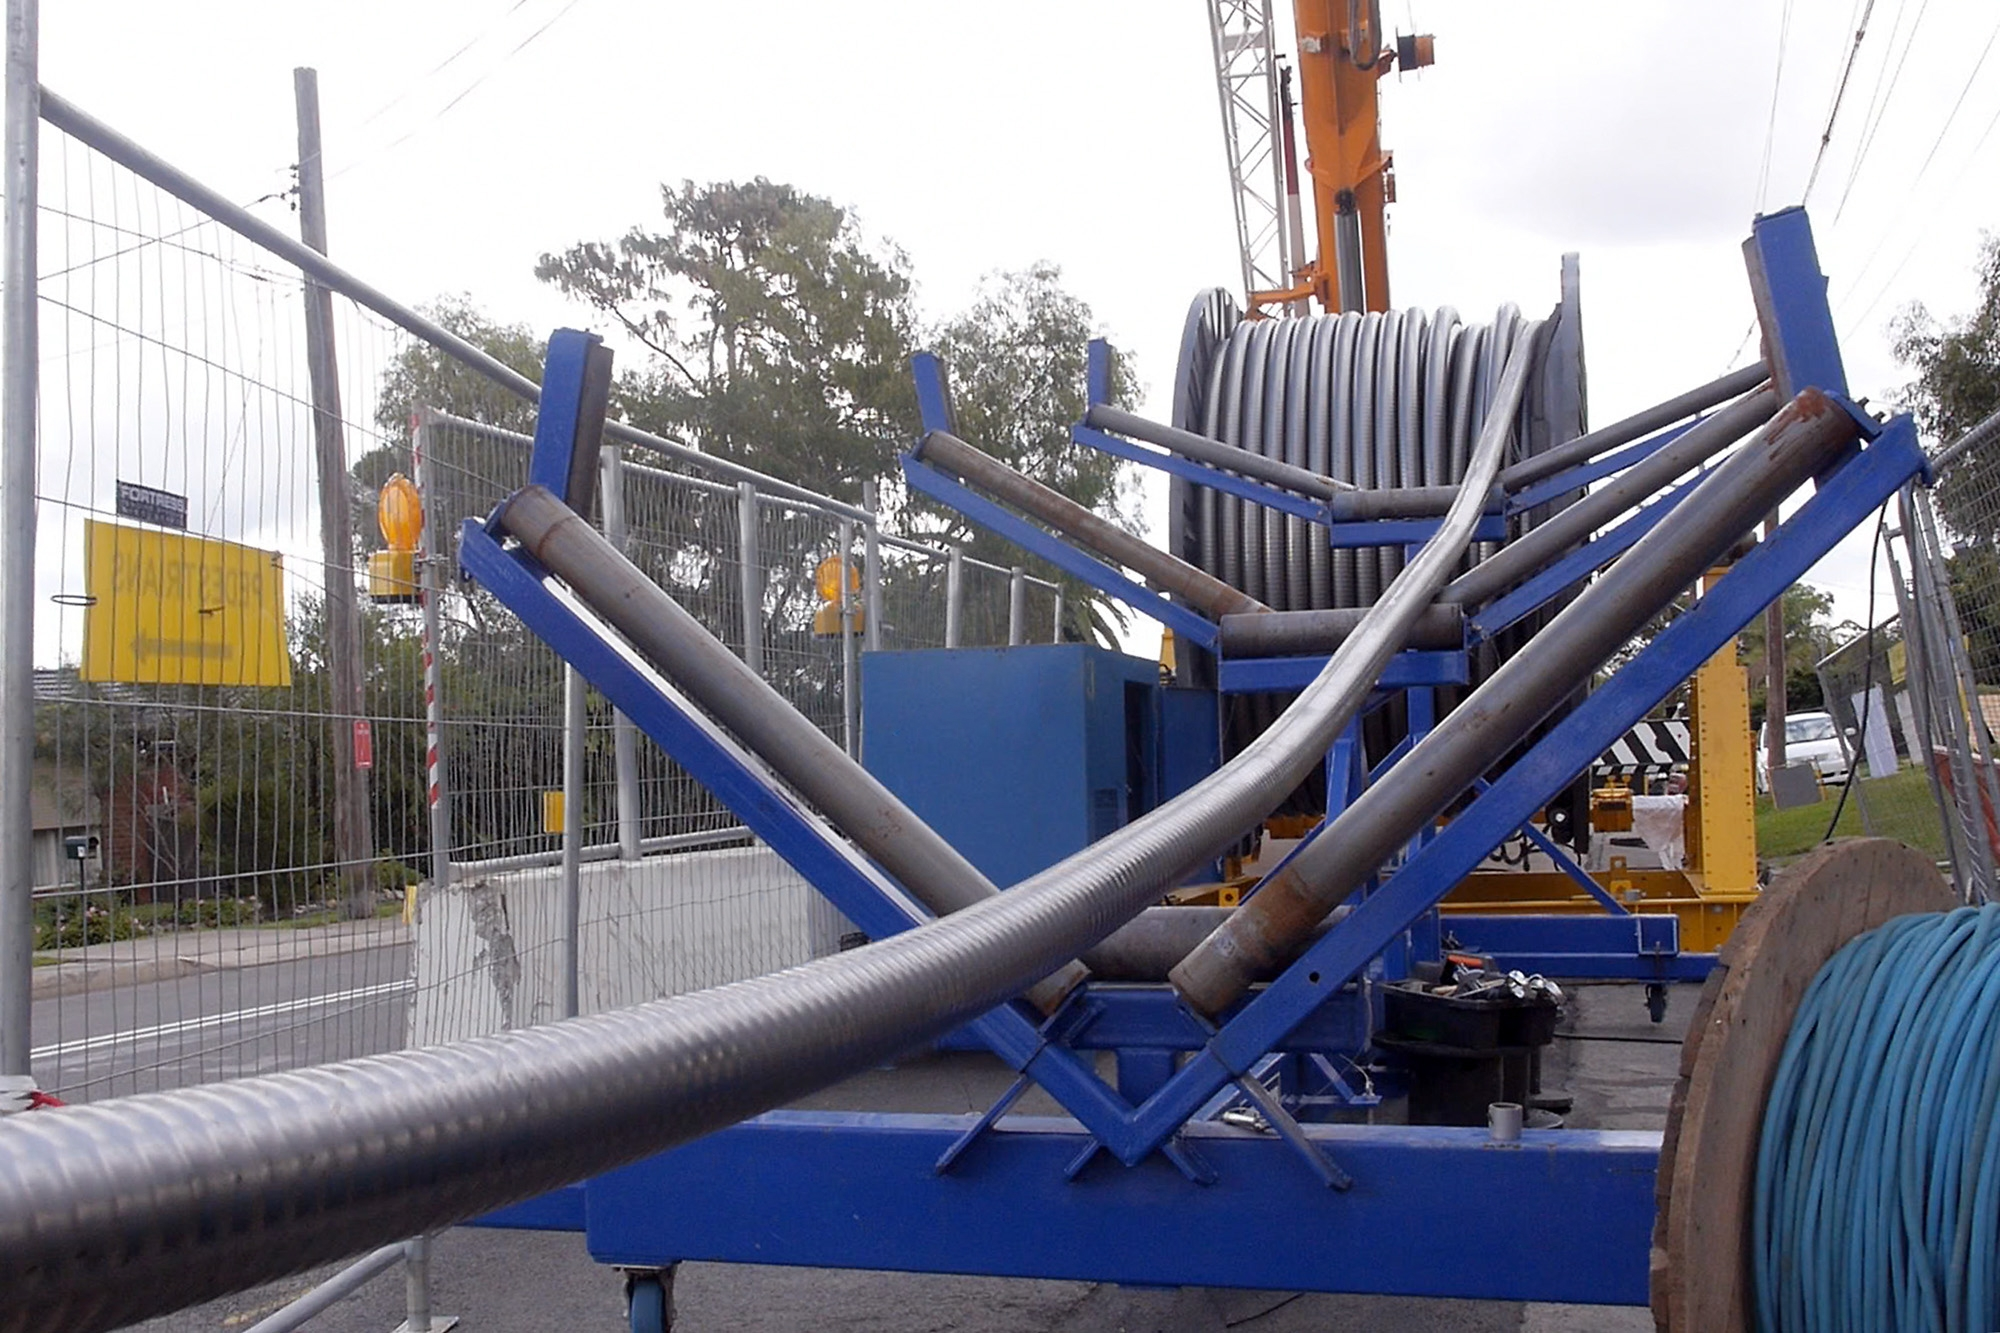 High Voltage Electrical Cable : Prysmian wins high voltage cable contracts worth